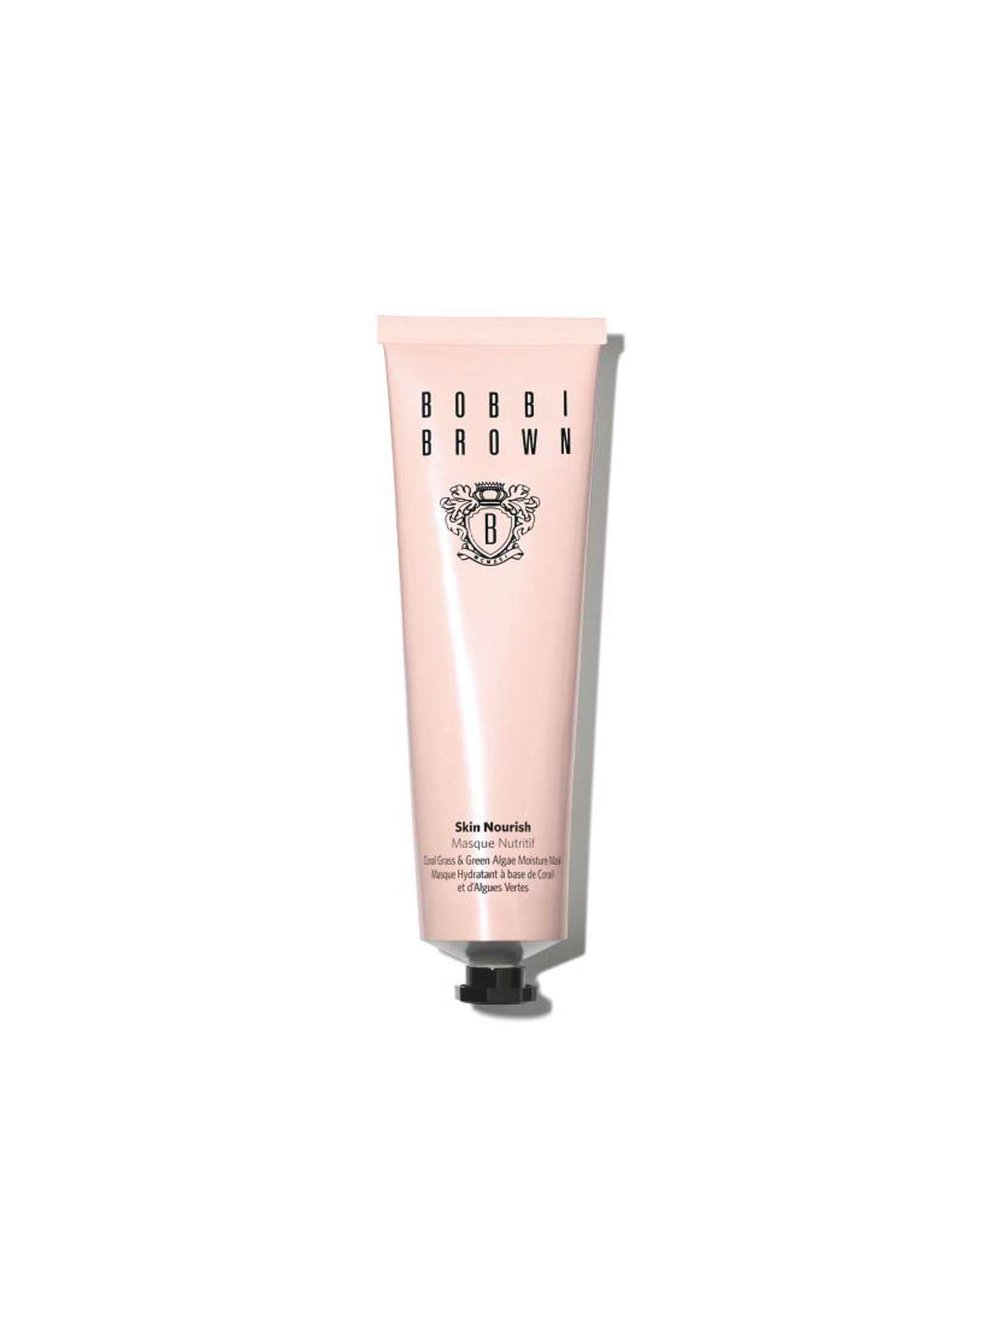 BOBBIE BROWN SKIN NOURISH MASQUE  Pamper yo self